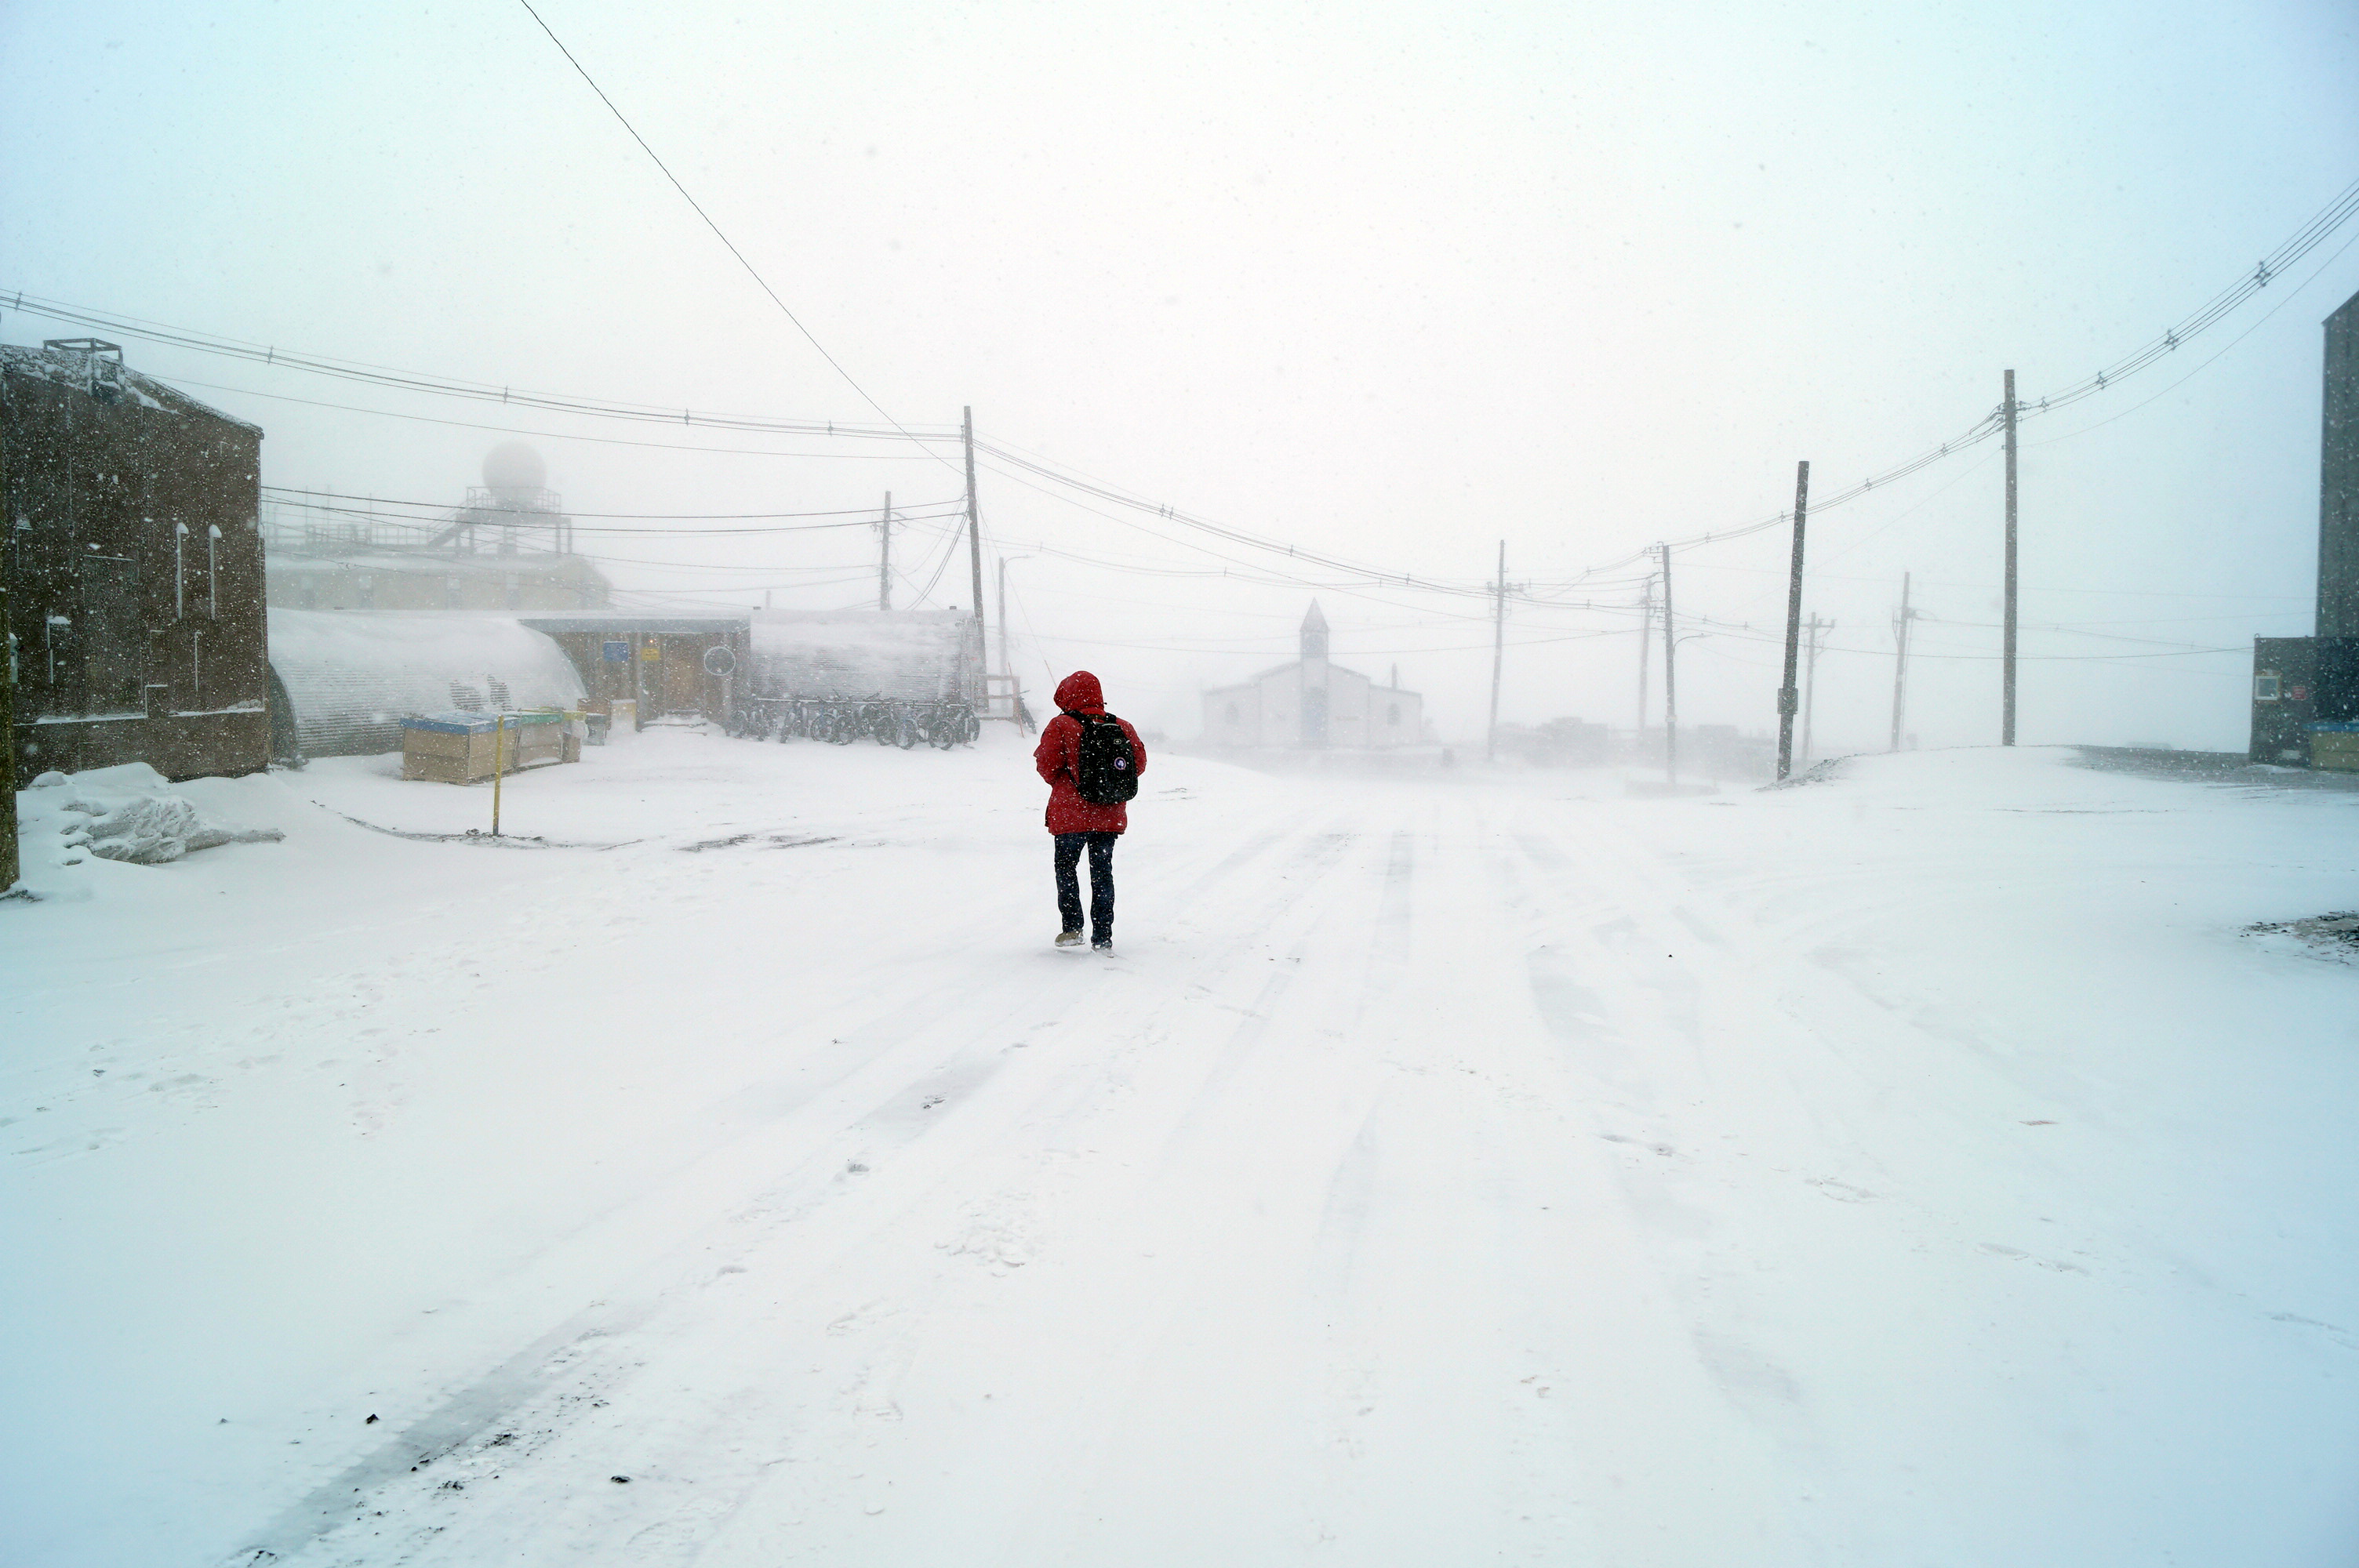 A person in a red jacket walking outside during a snow storm.